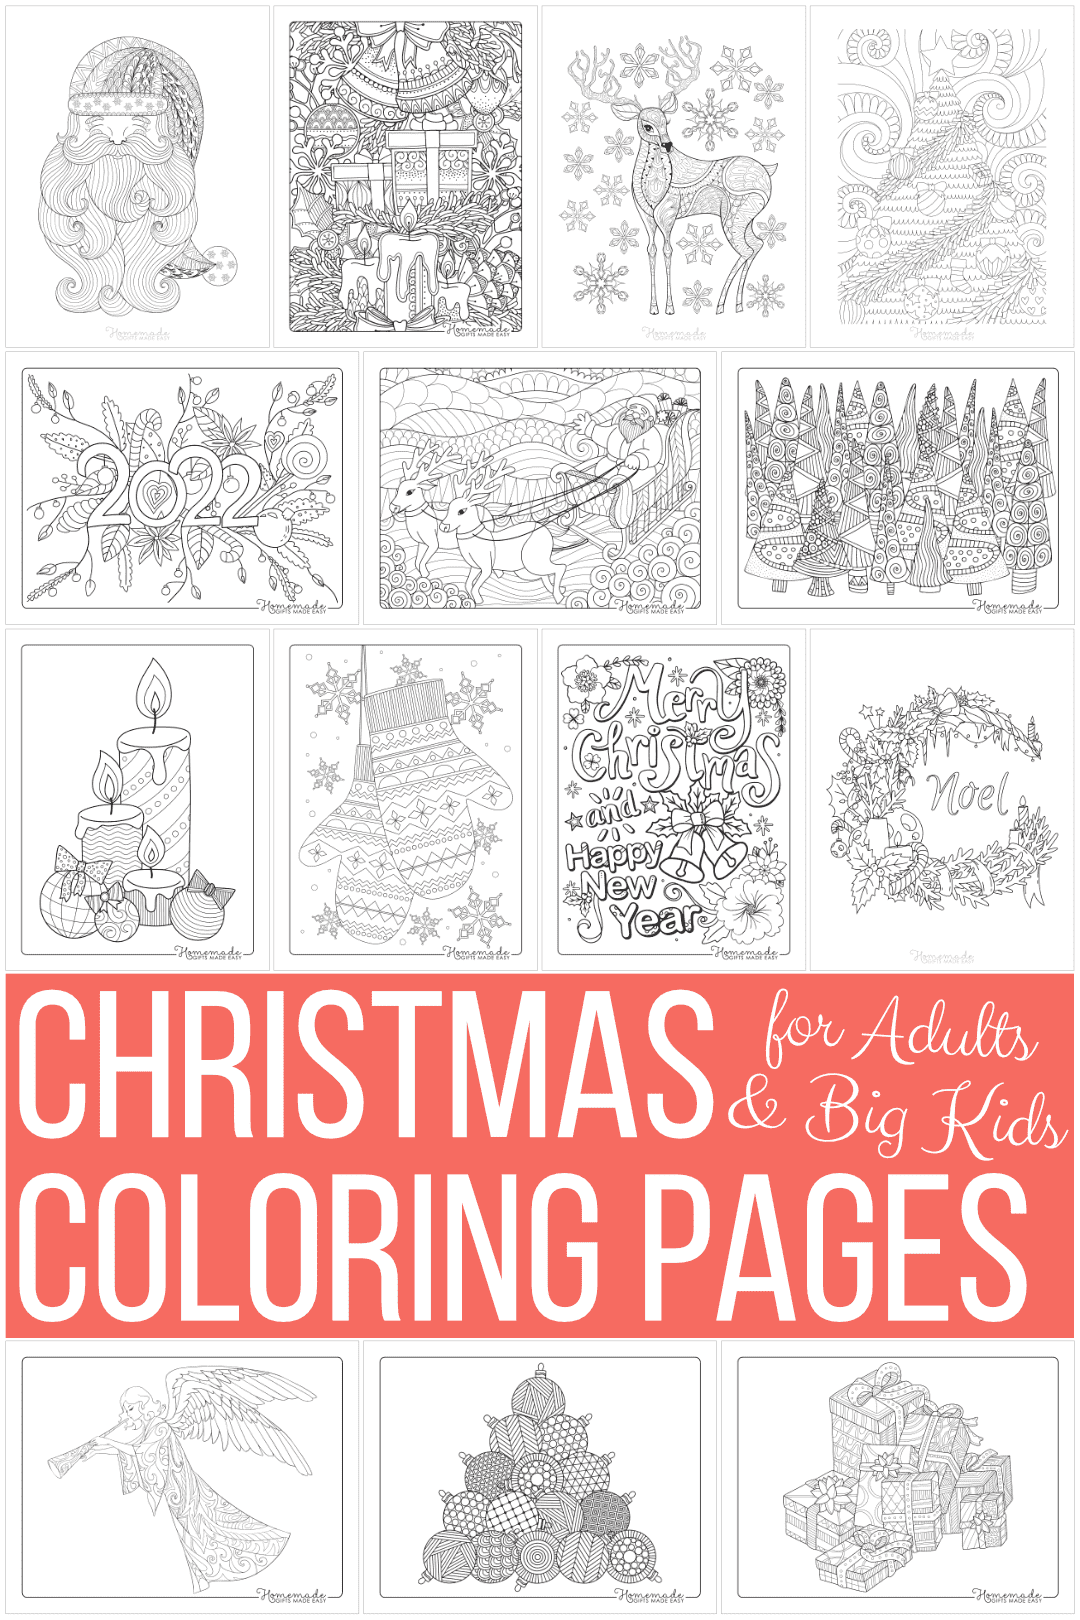 free printable christmas coloring pages for adults - 40+ designs